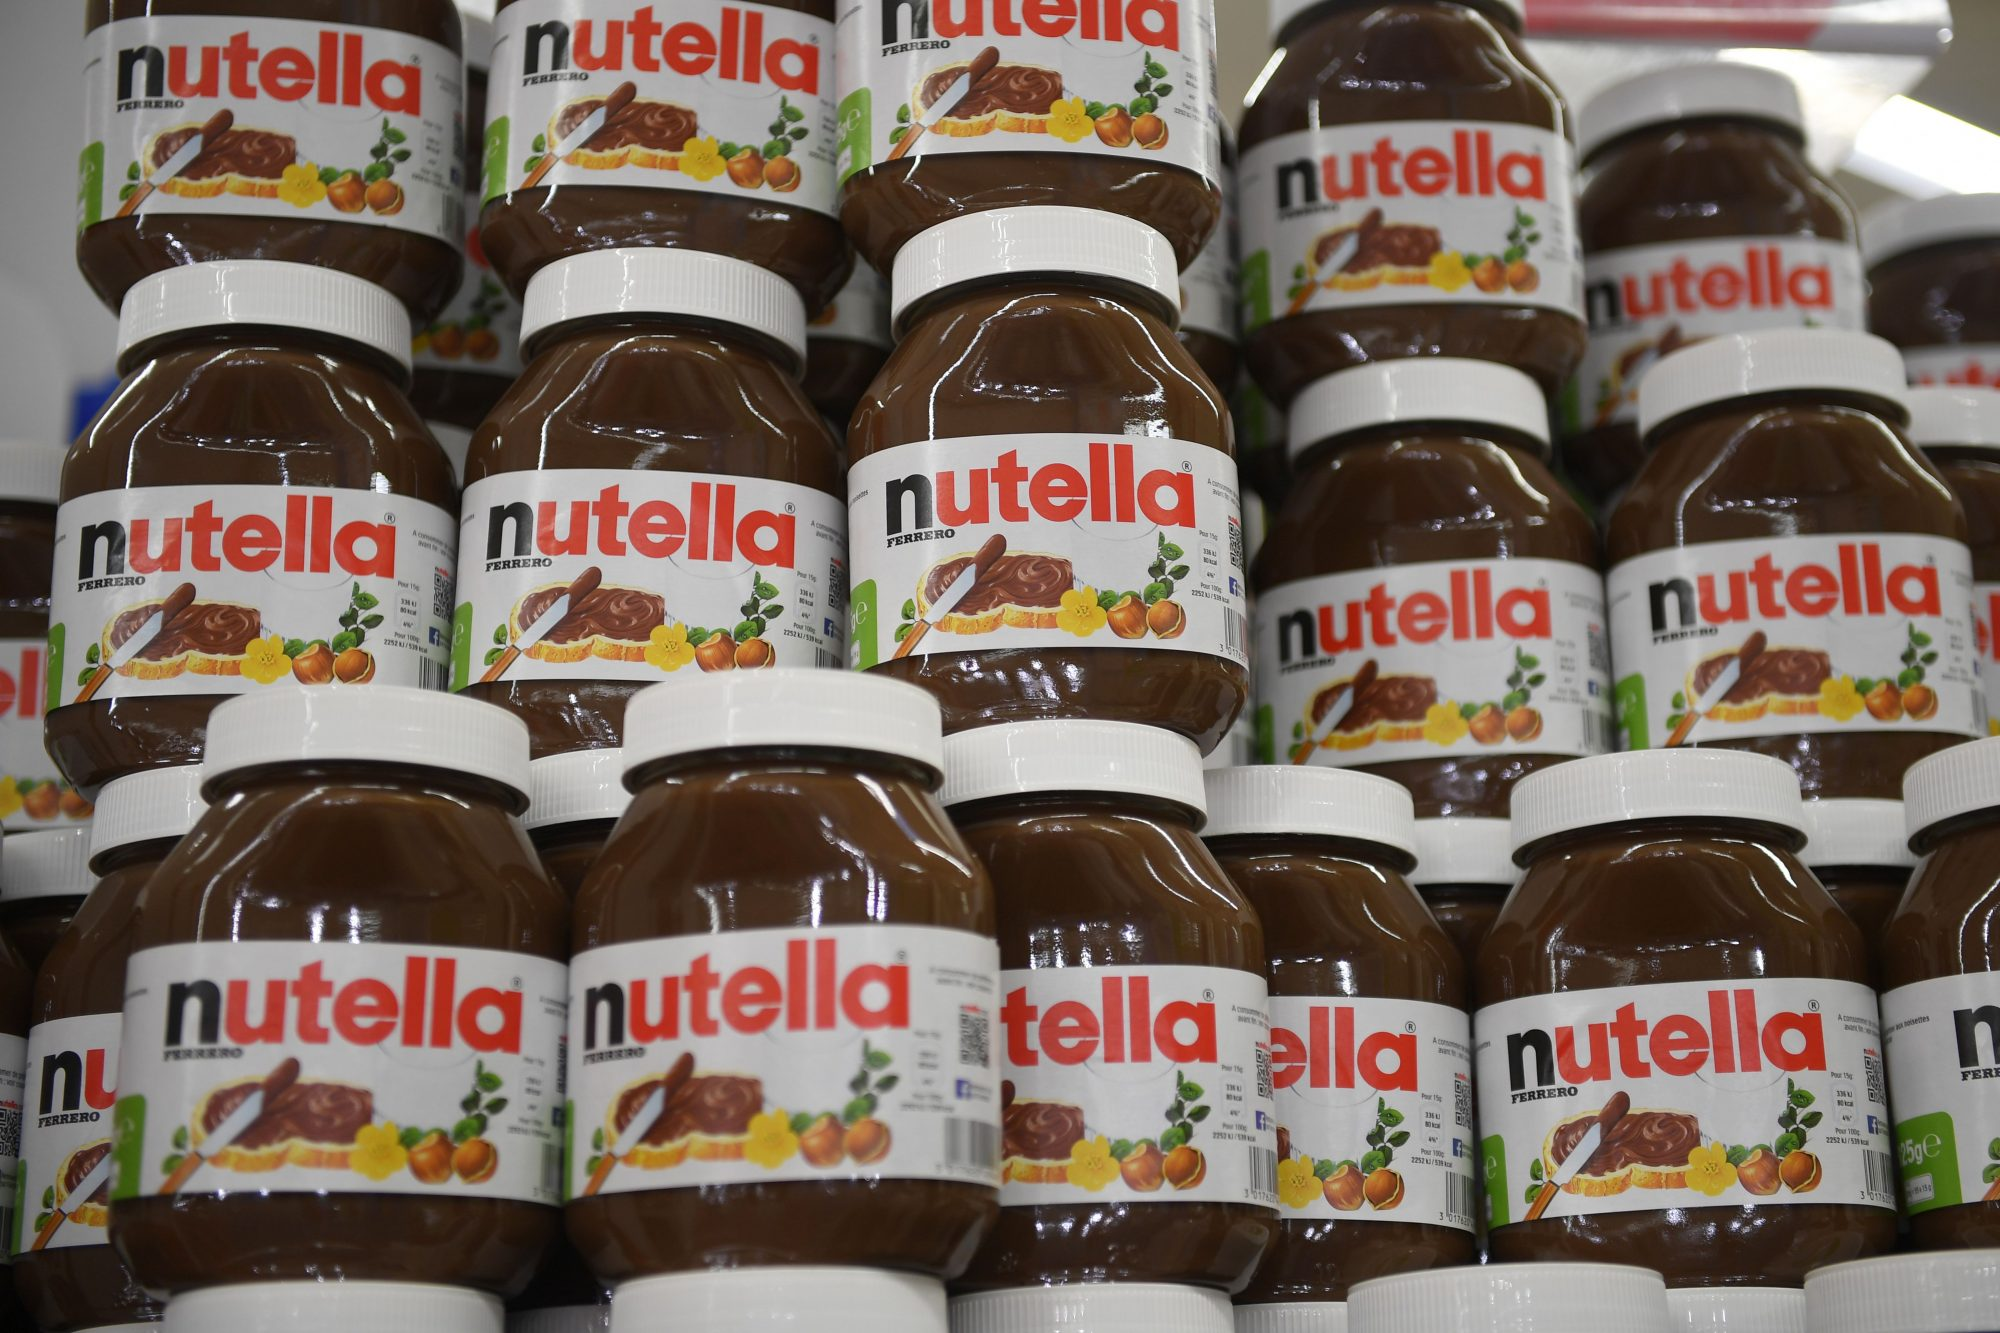 Costco Just Introduced Its Own Version of Nutella and It's Way Cheaper